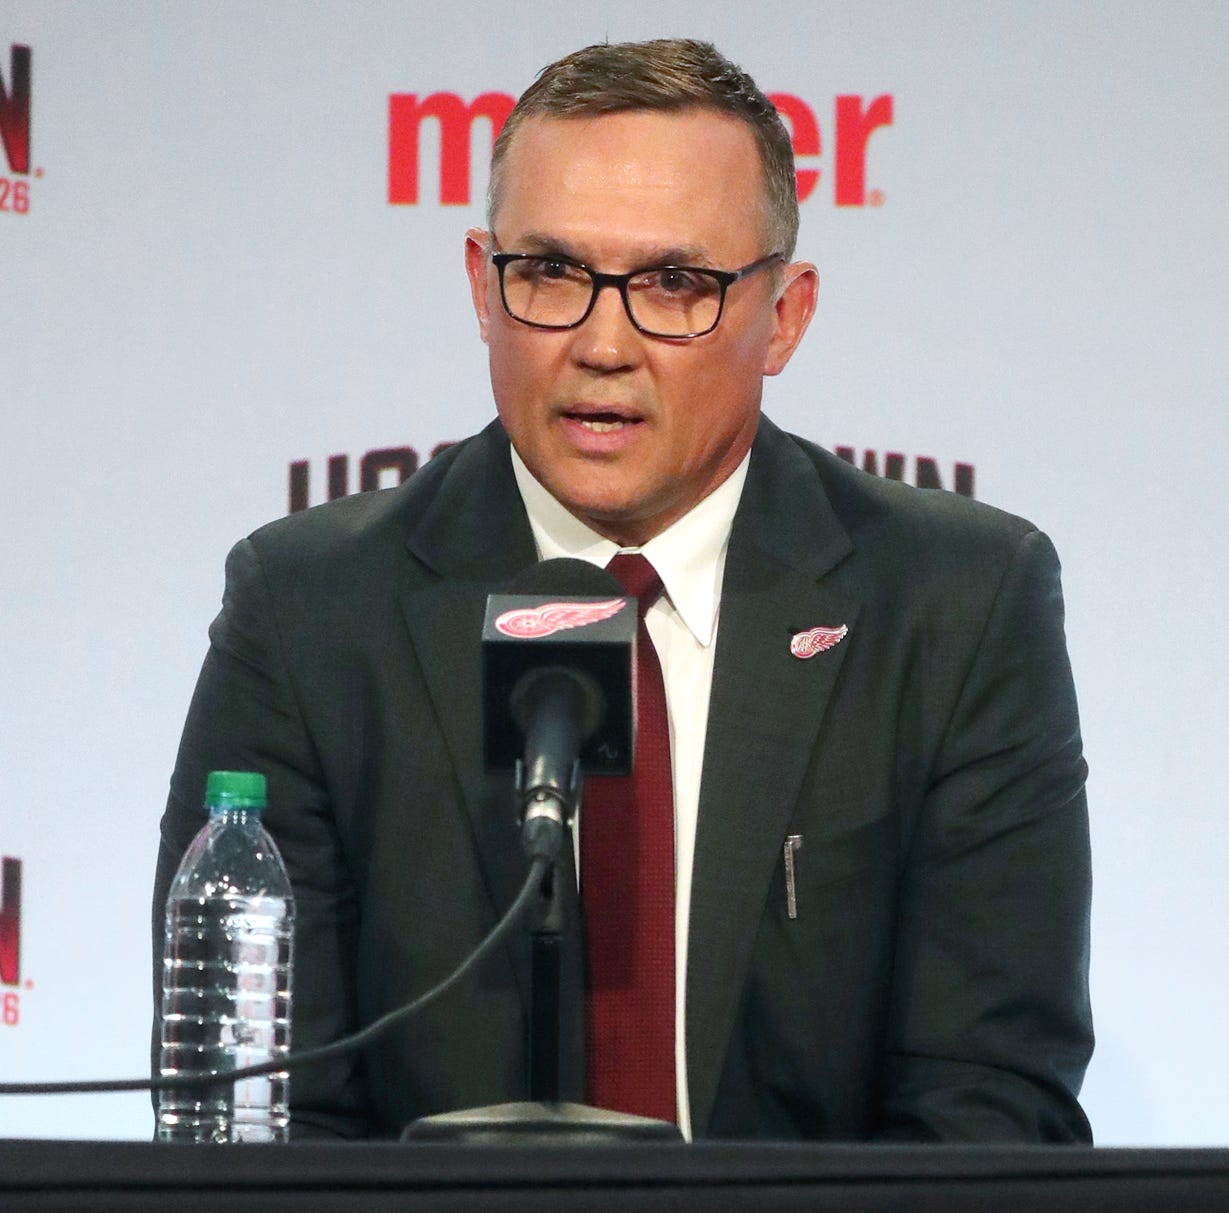 Steve Yzerman, once unrecognized in Detroit, knows 'I have a lot of work to do'